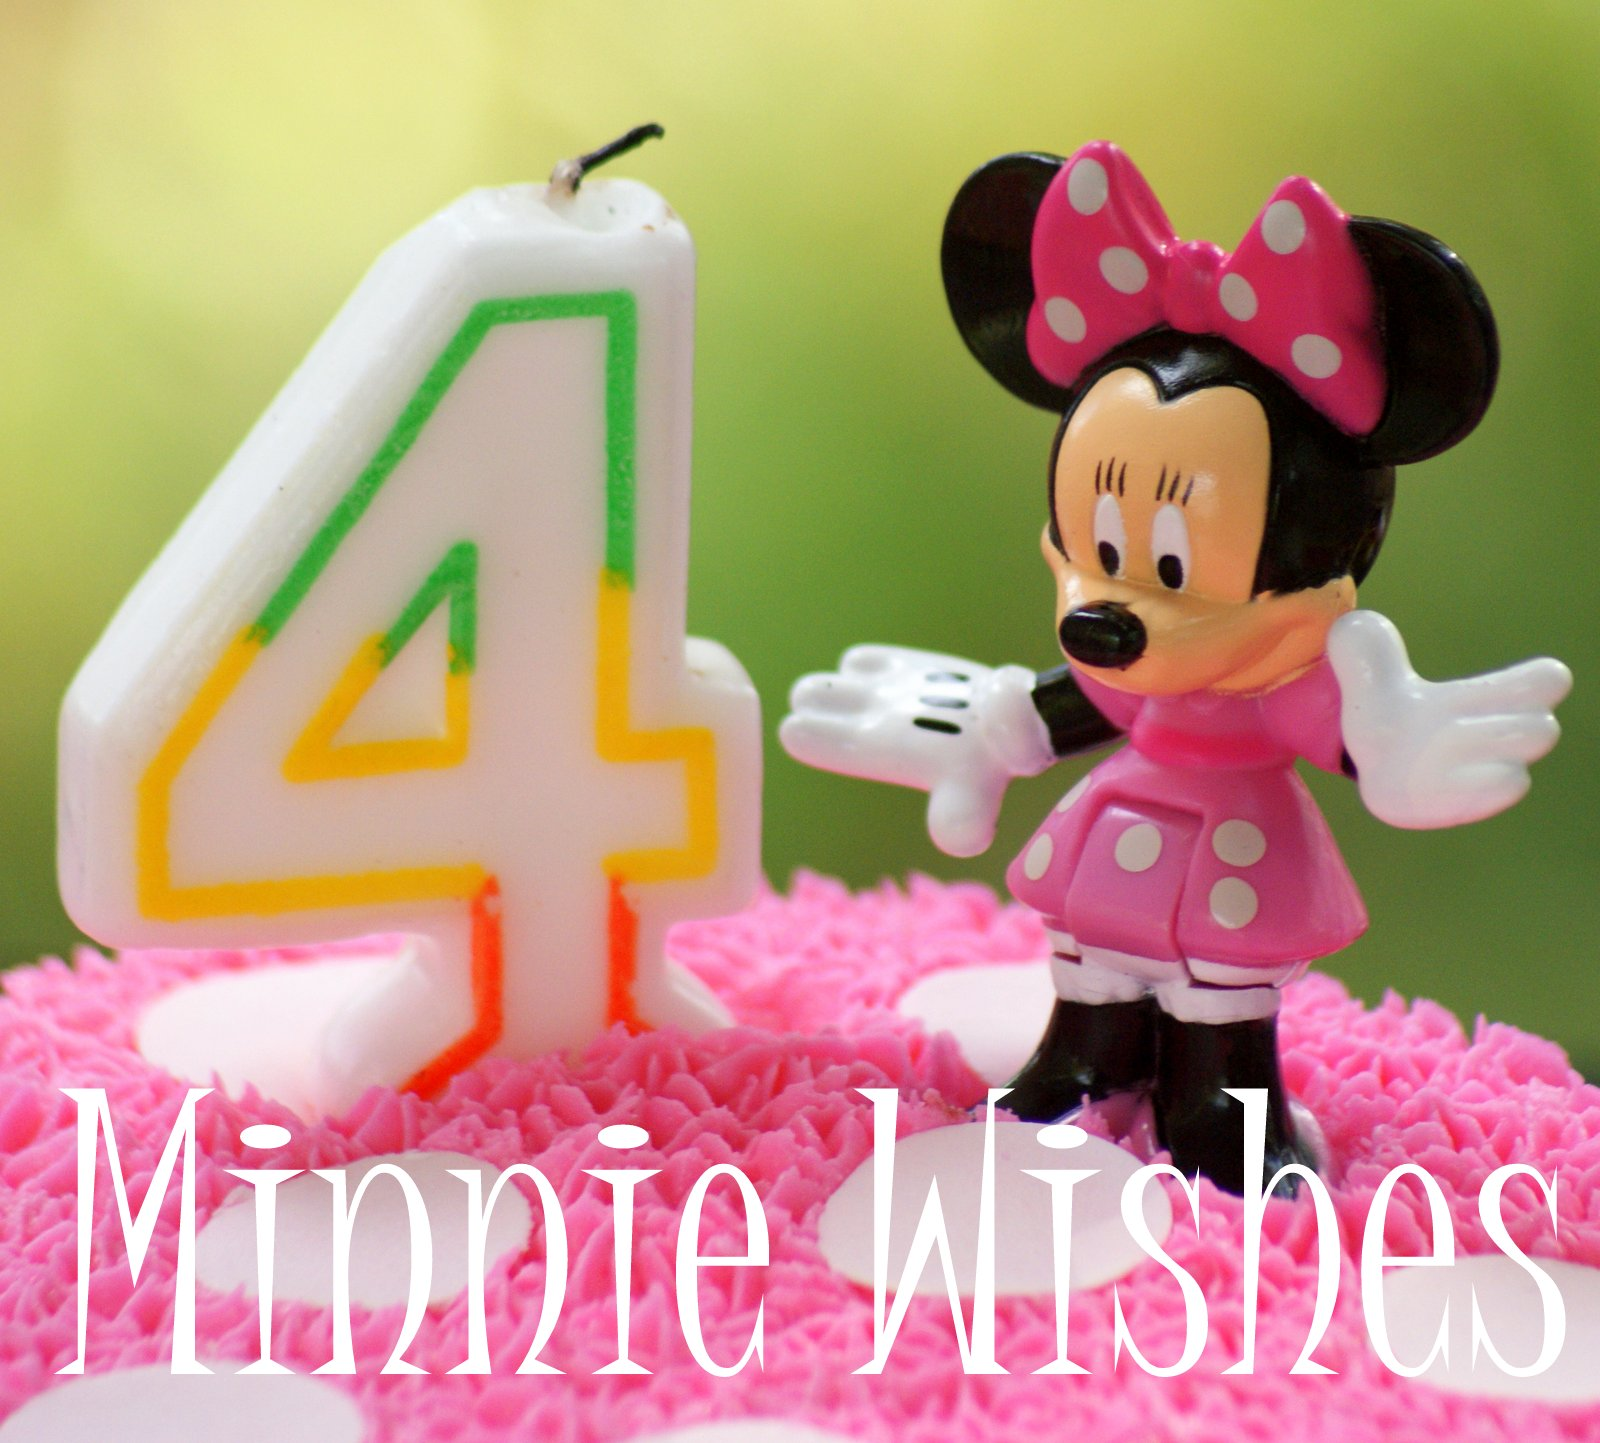 Minnie Mouse First Birthday Party Via Little Wish Parties: A Little Loveliness: A Minnie Birthday Party